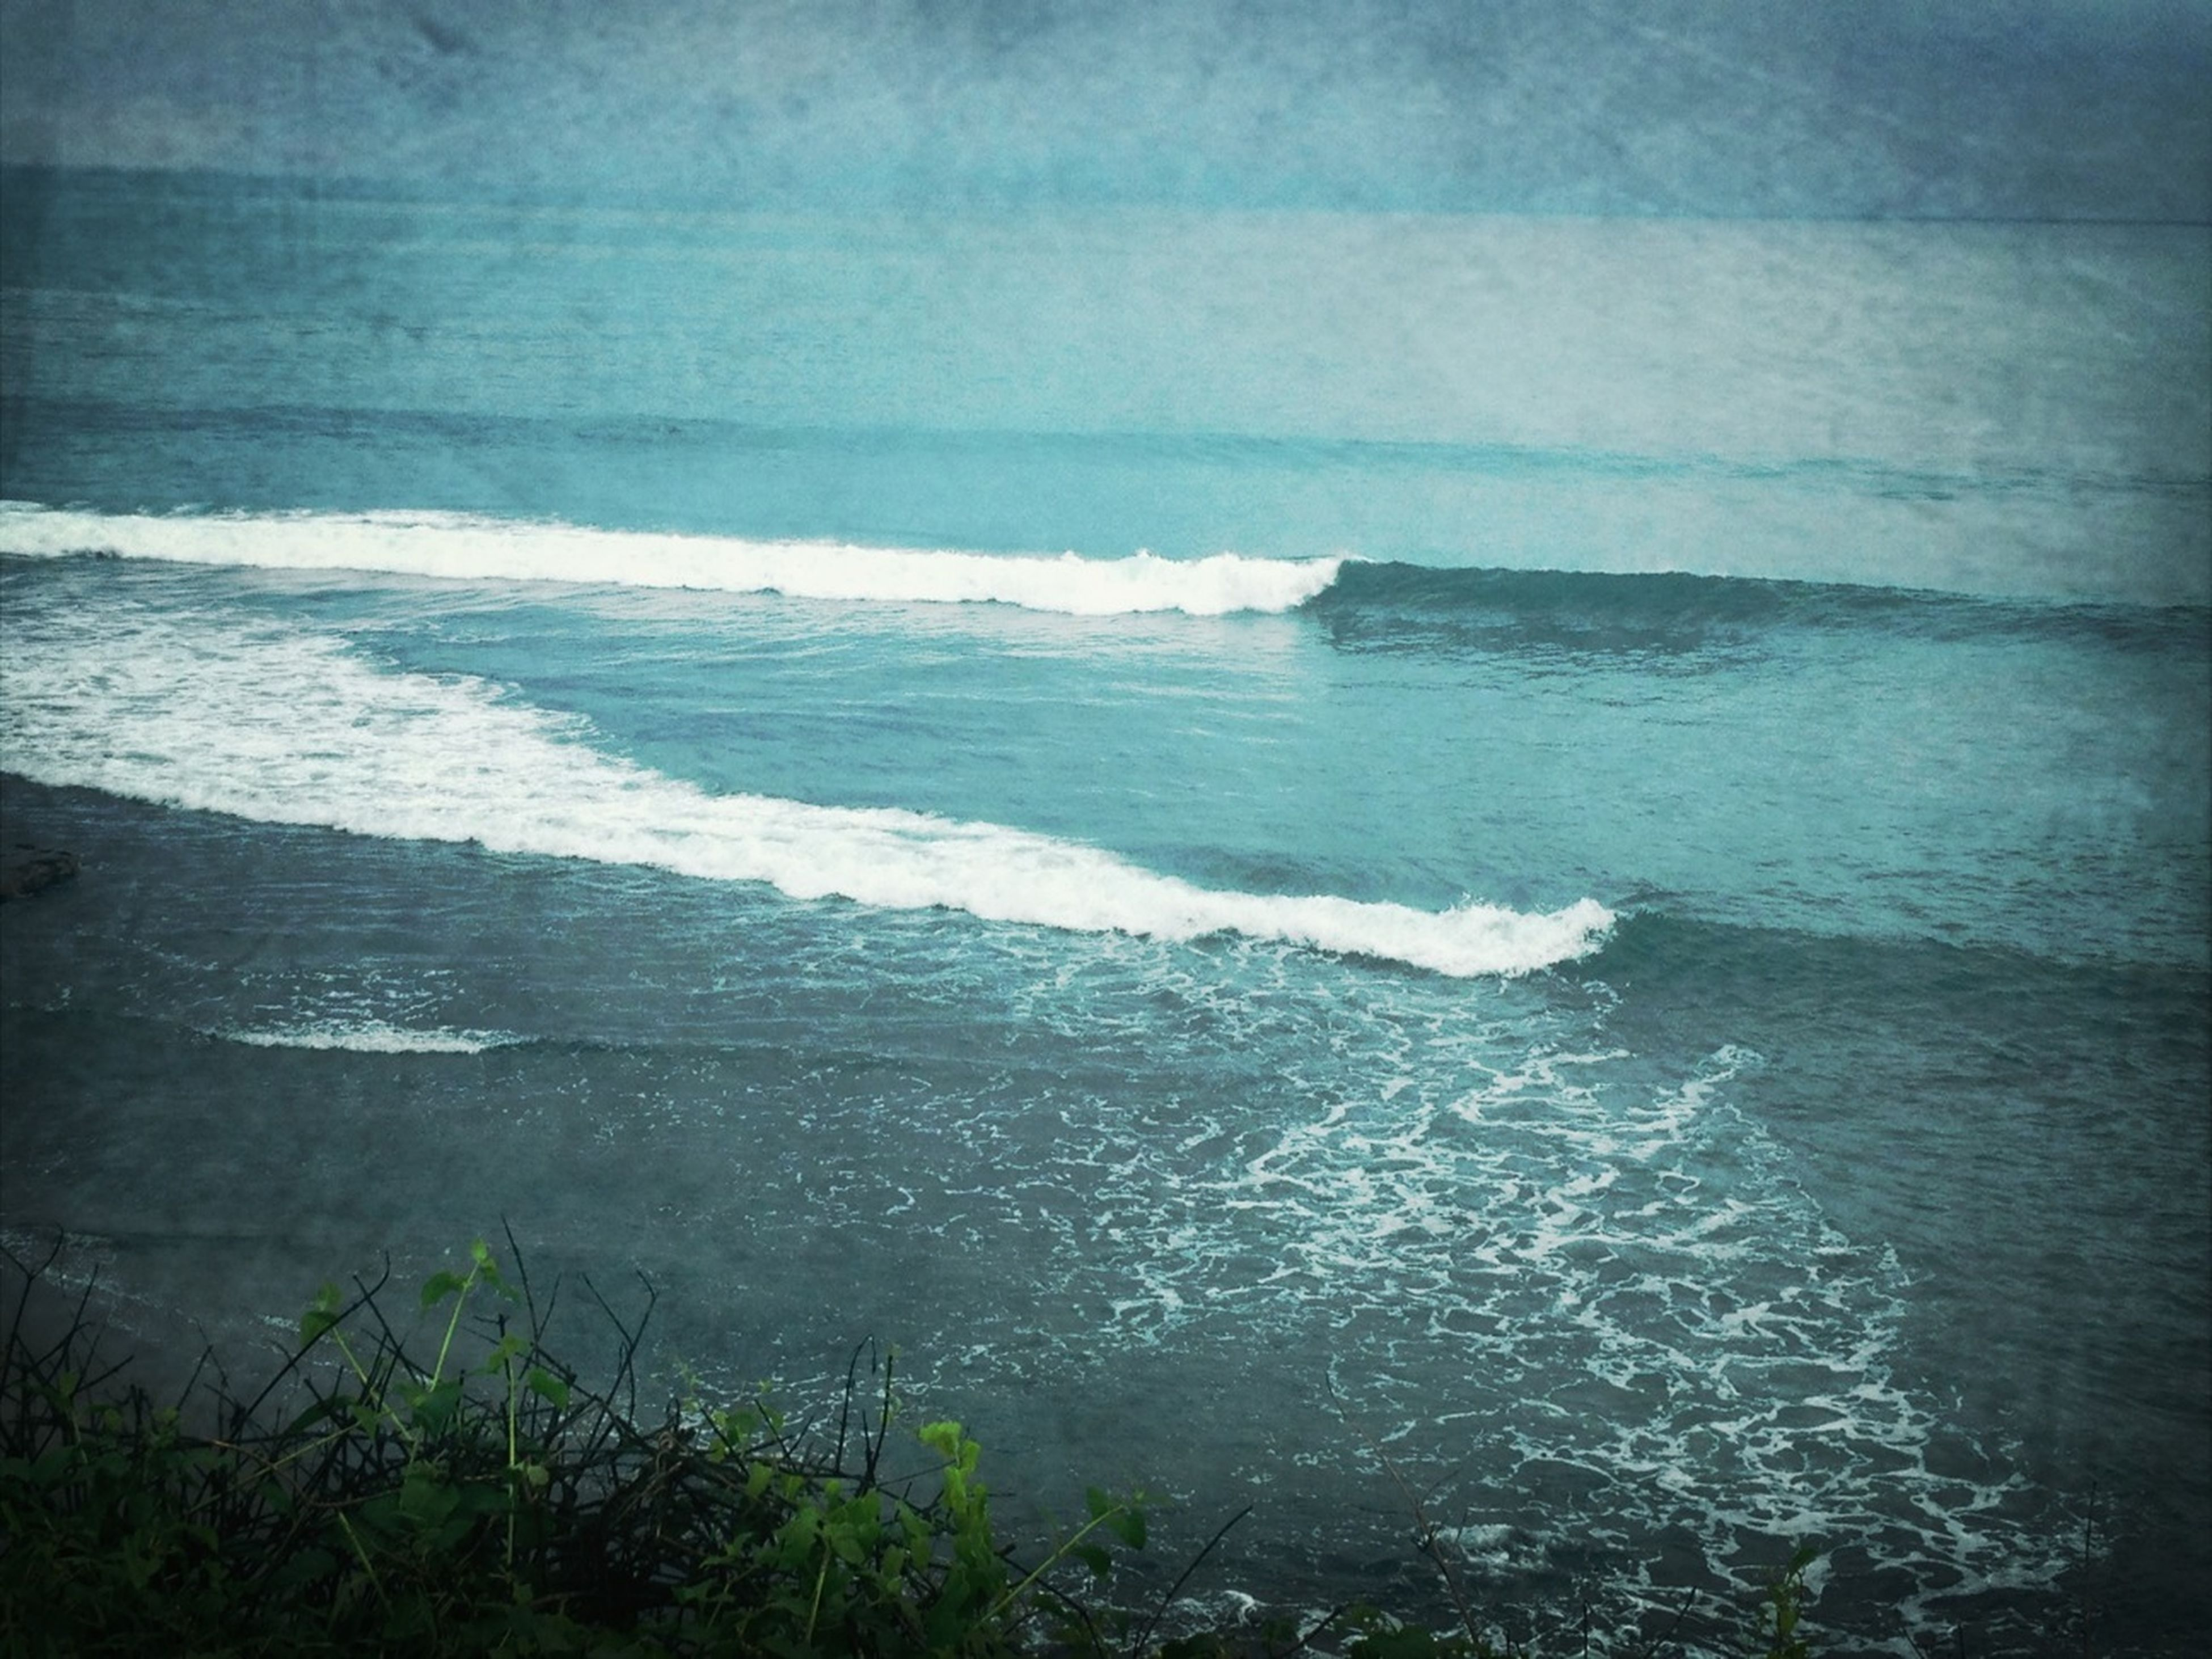 It's On Join Us For Best Surfing In Best Surfspot In Bali.what Else U Waiting For Get Book Now